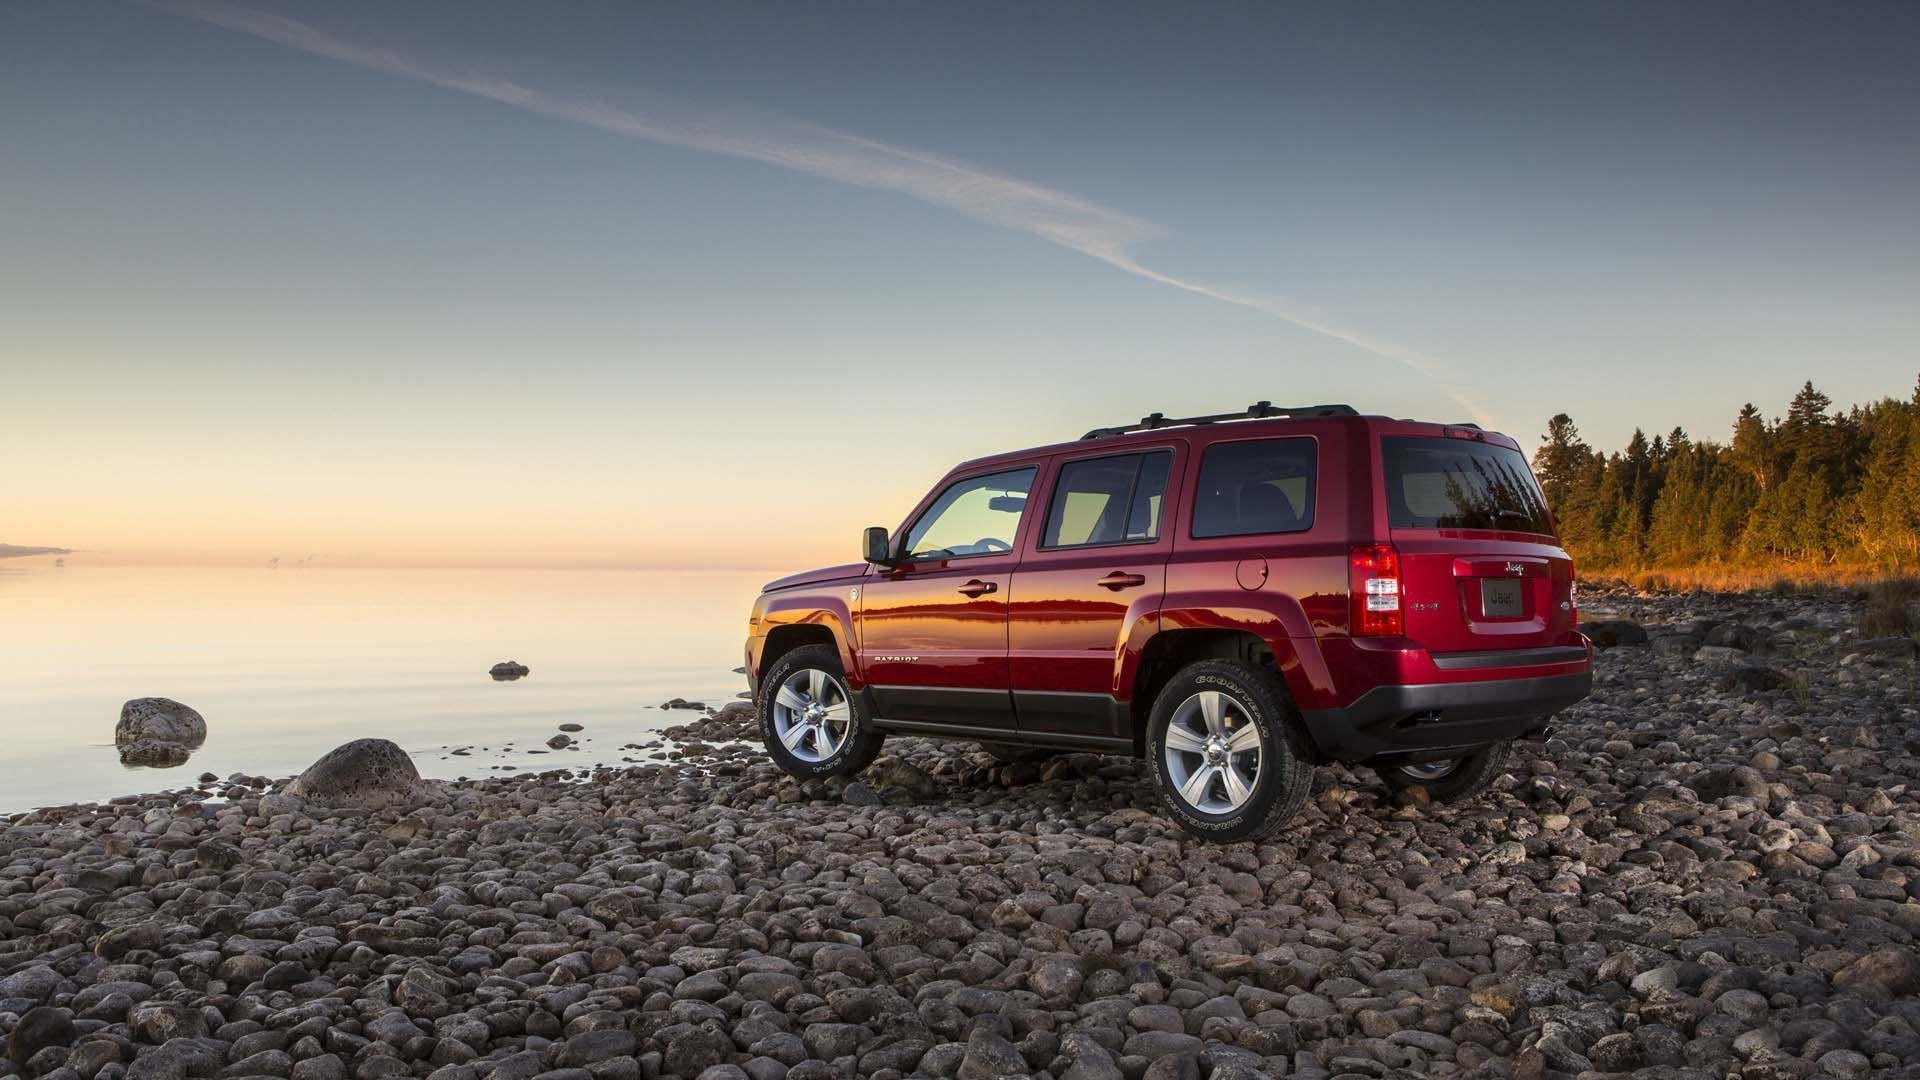 Res: 1920x1080, Jeep Patriot Mk74 - The Red Adventur…